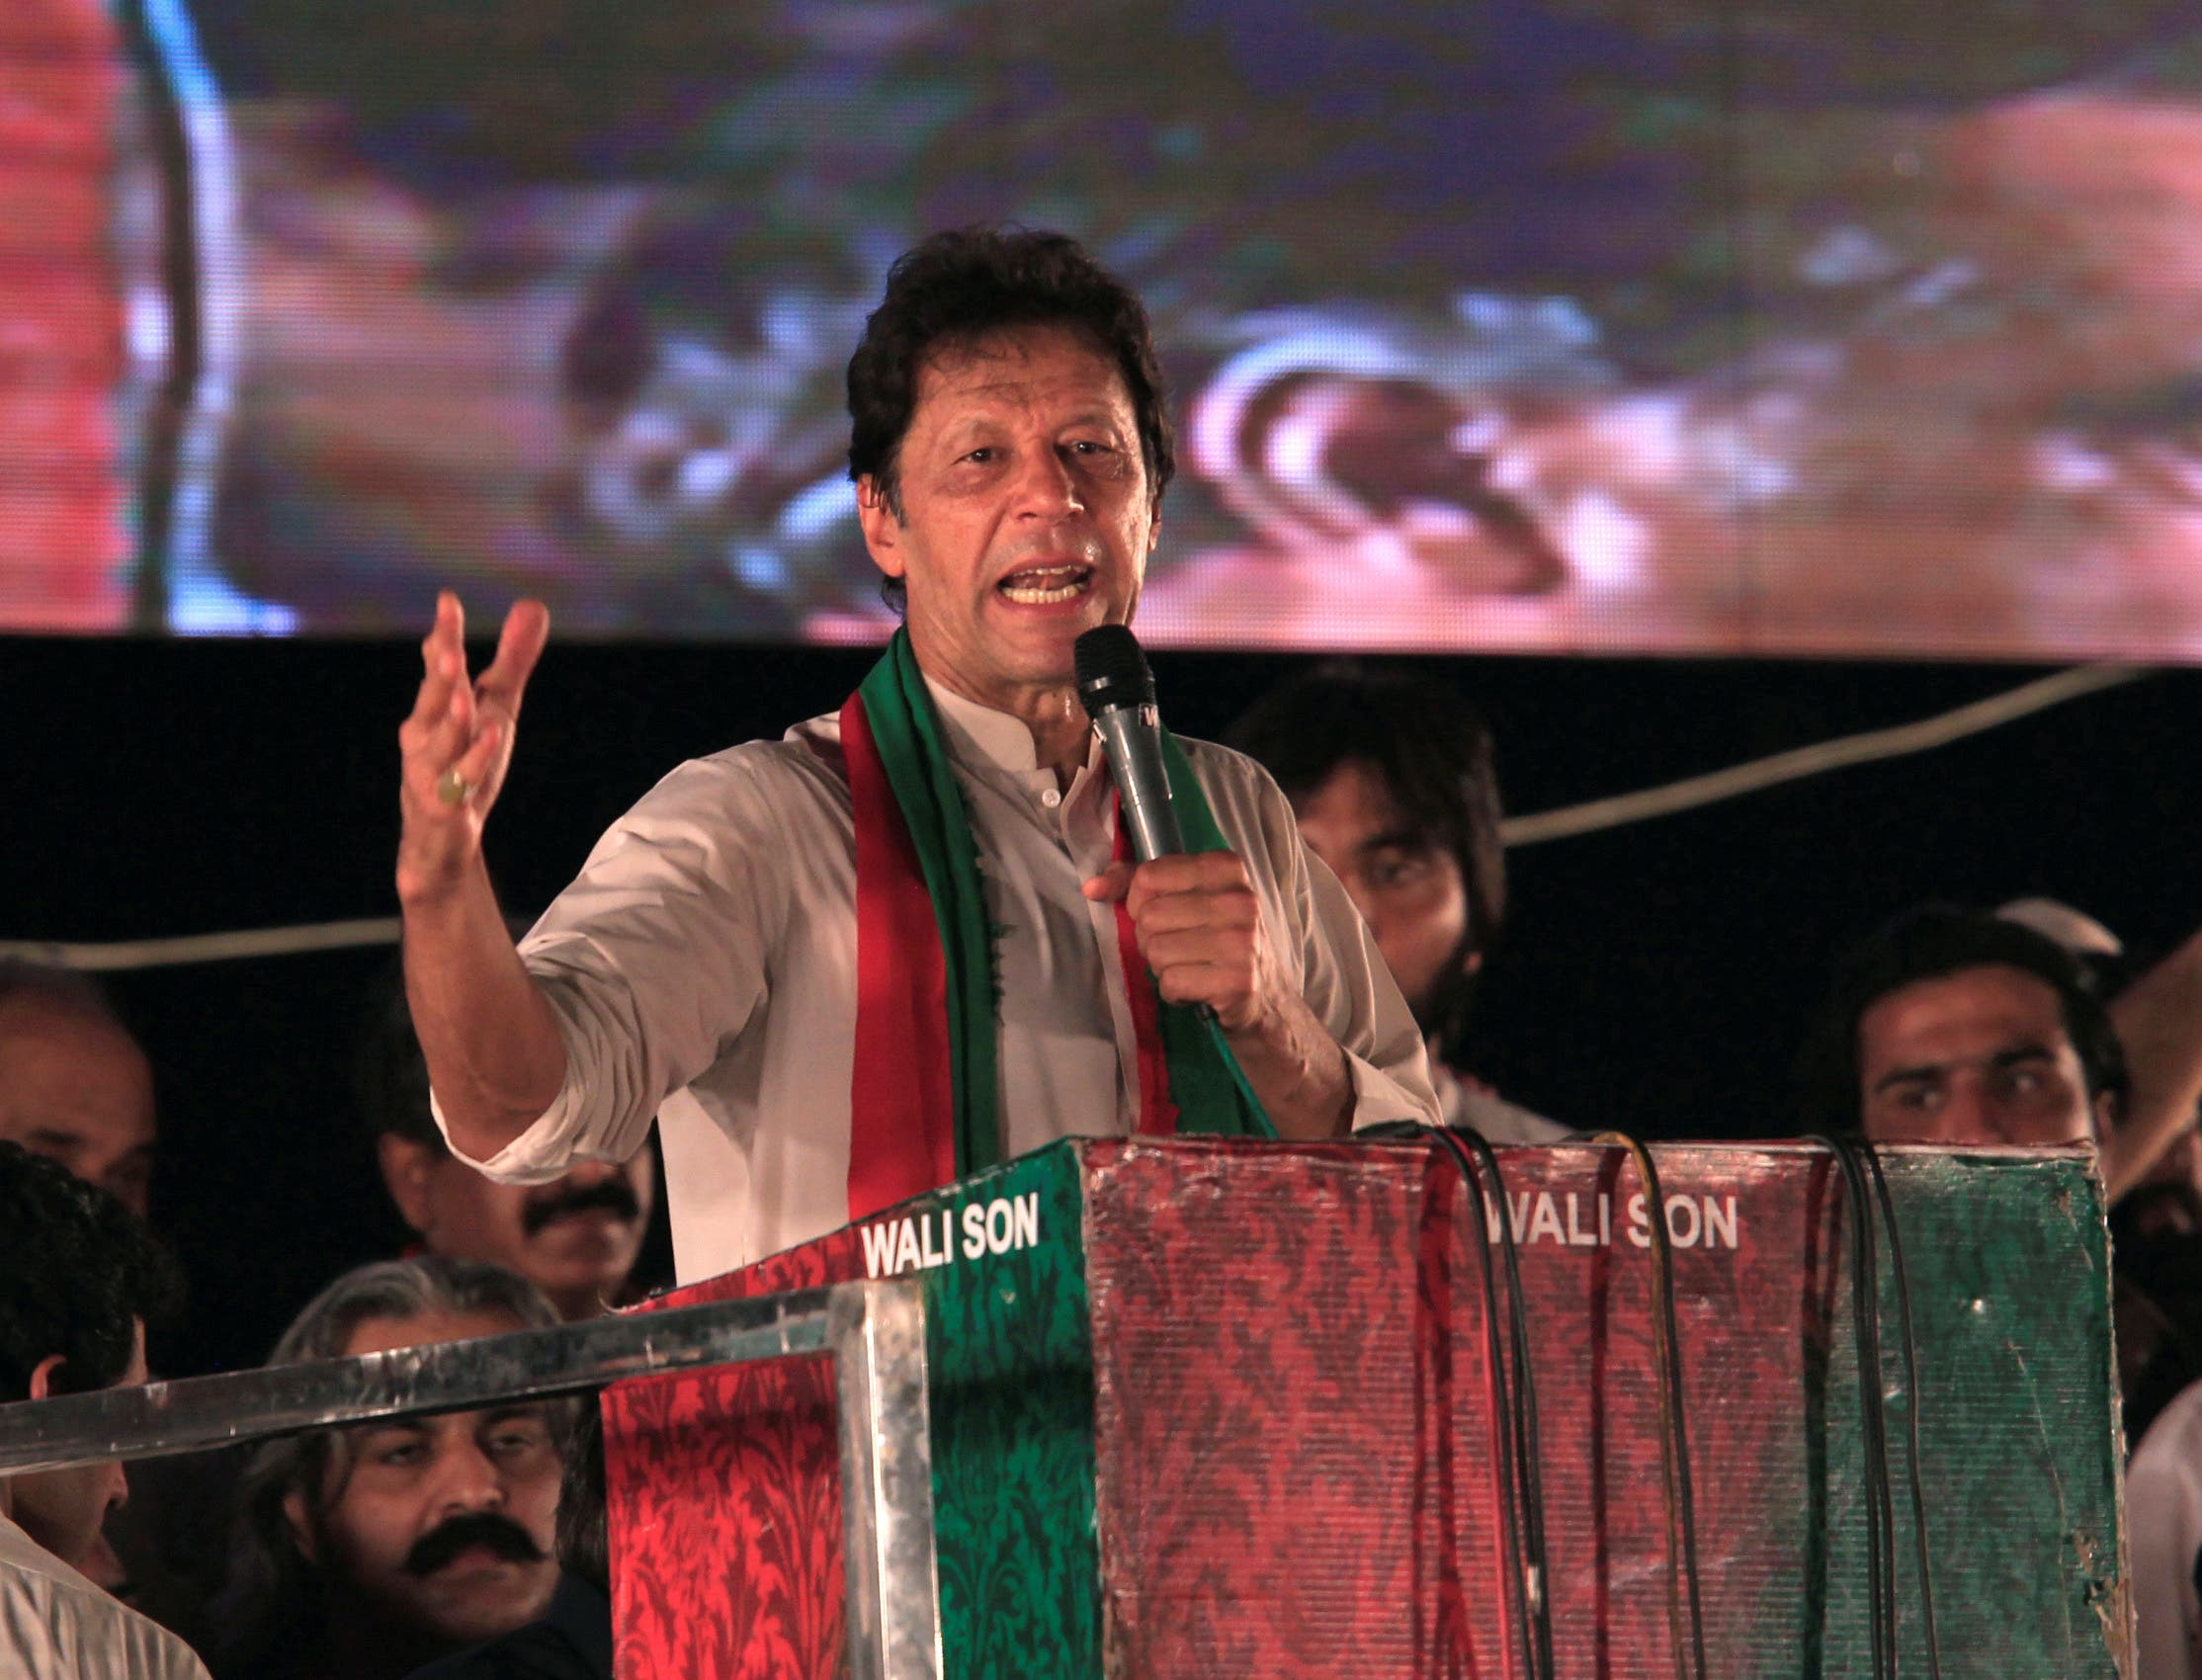 Imran Khan speaks during a celebration rally after the Pakistan Supreme Court disqualified Prime Minister Nawaz Sharif in Islamabad on July 30, 2017. (Reuters)